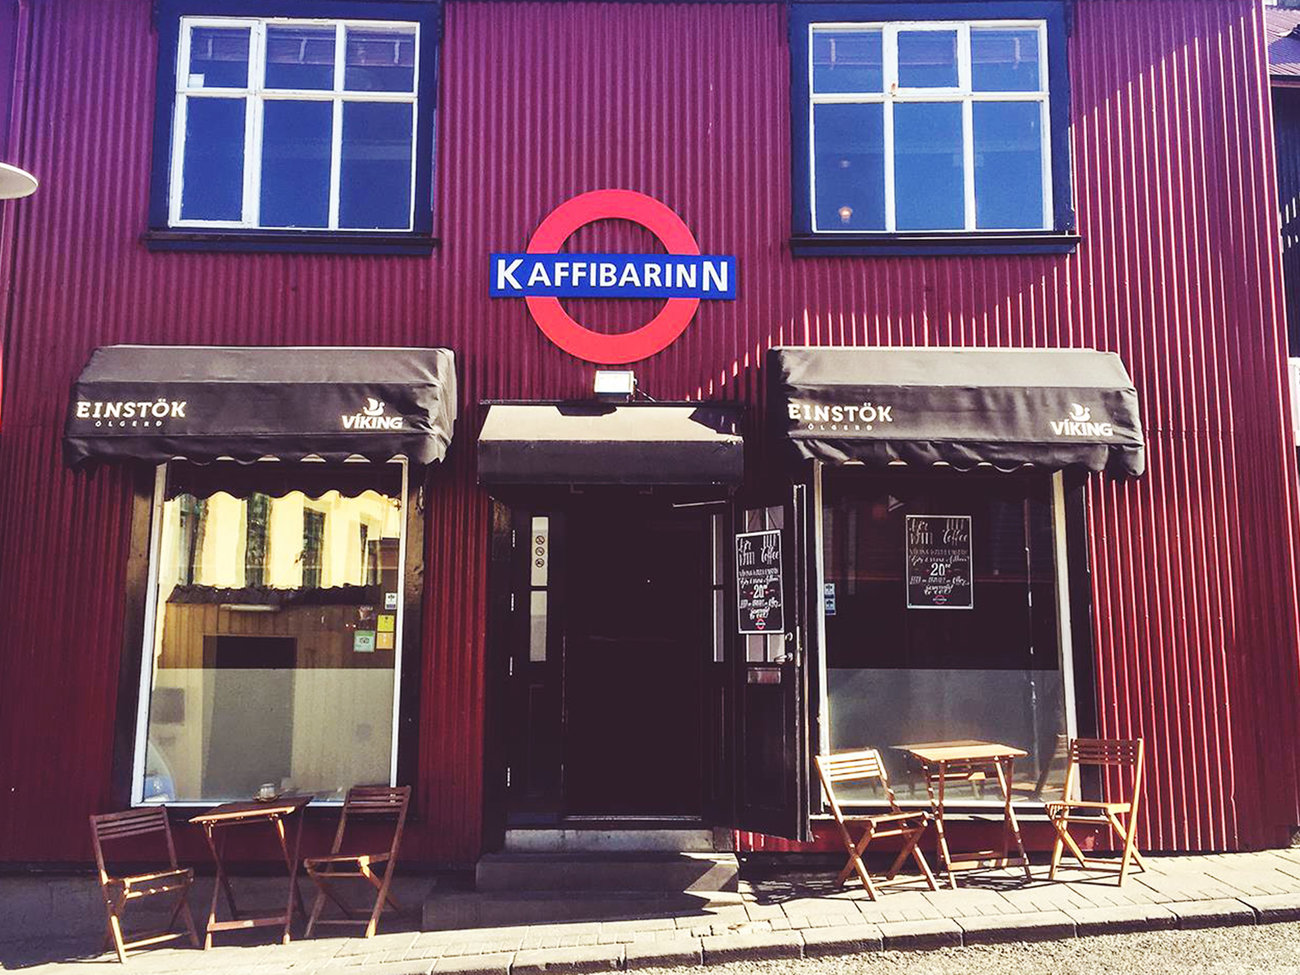 Kaffibarinn Bar in Iceland